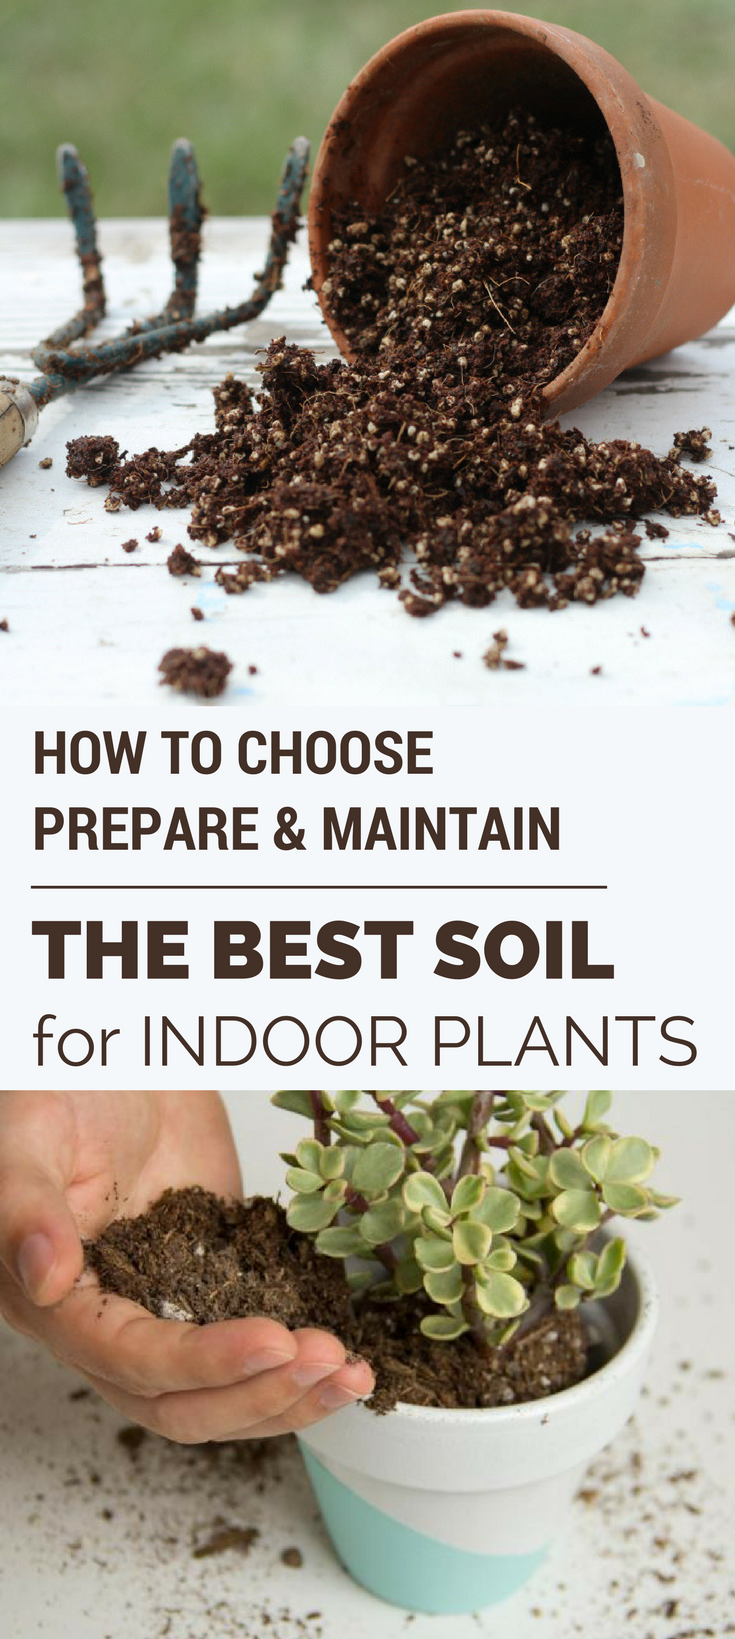 Marvelous How To Choose, Prepare U0026 Maintain The Best Soil For Indoor Plants    GardenTipz.com